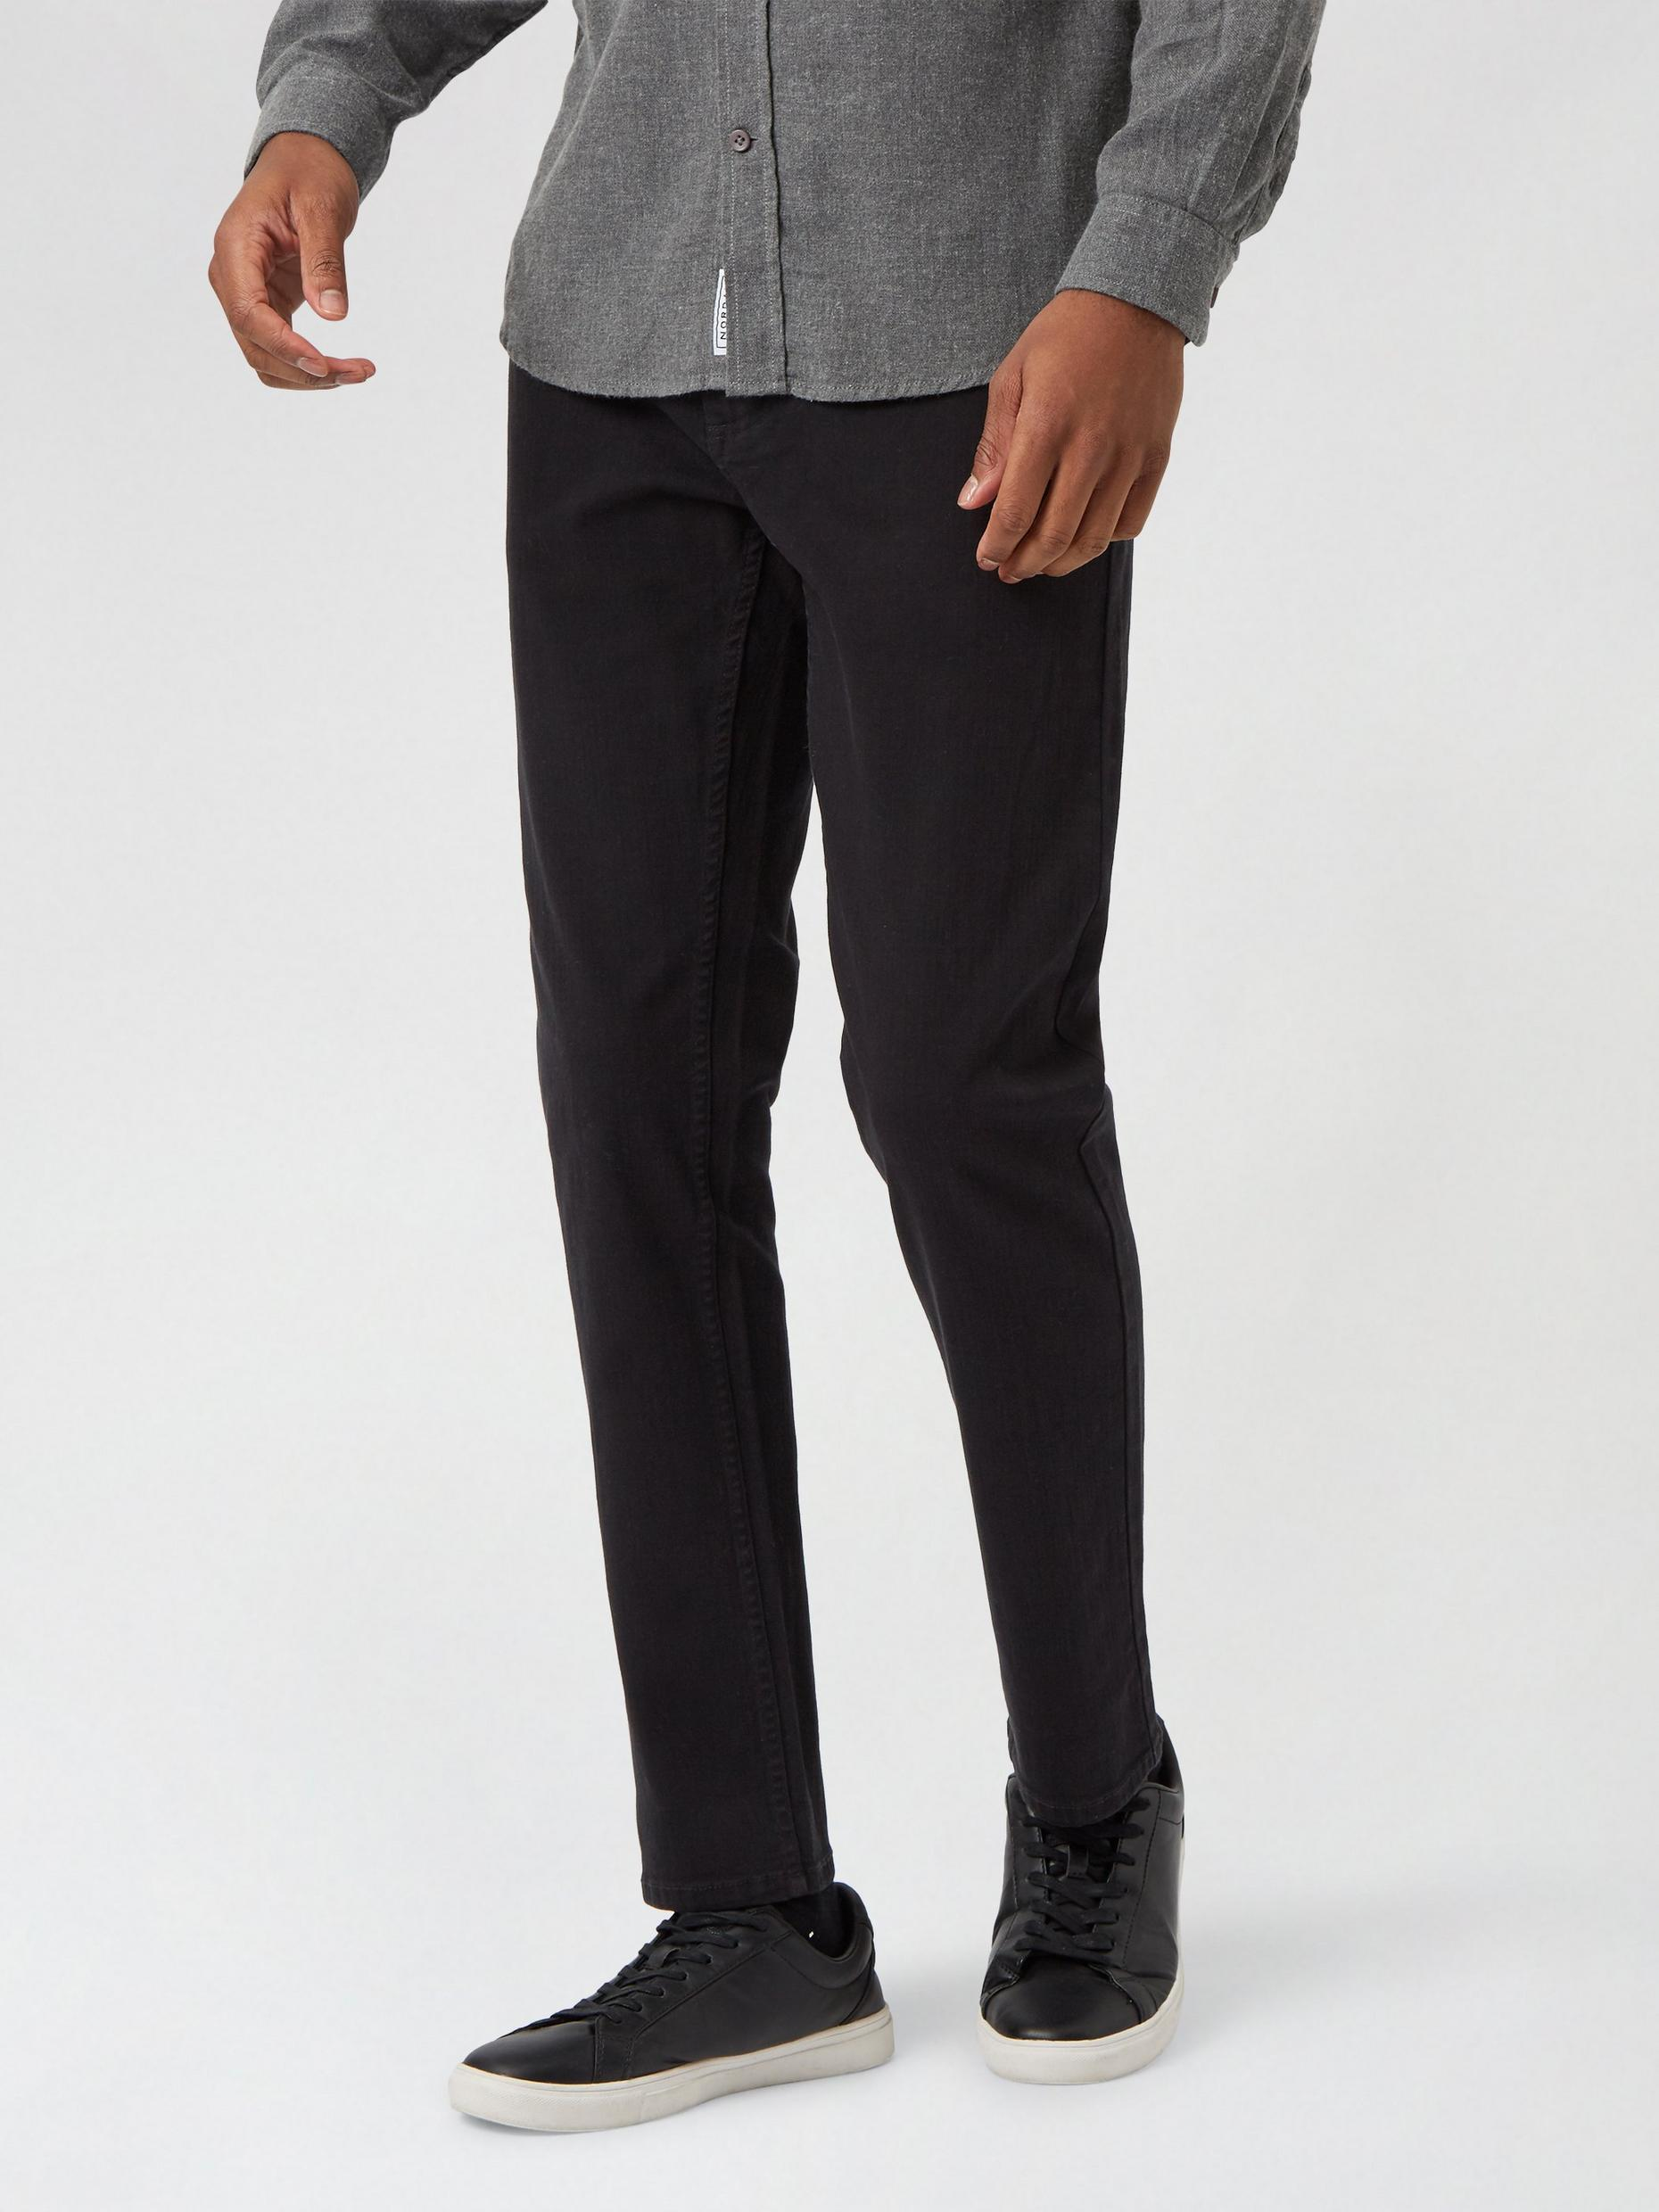 Jet Black Slim Fit Blake Jeans